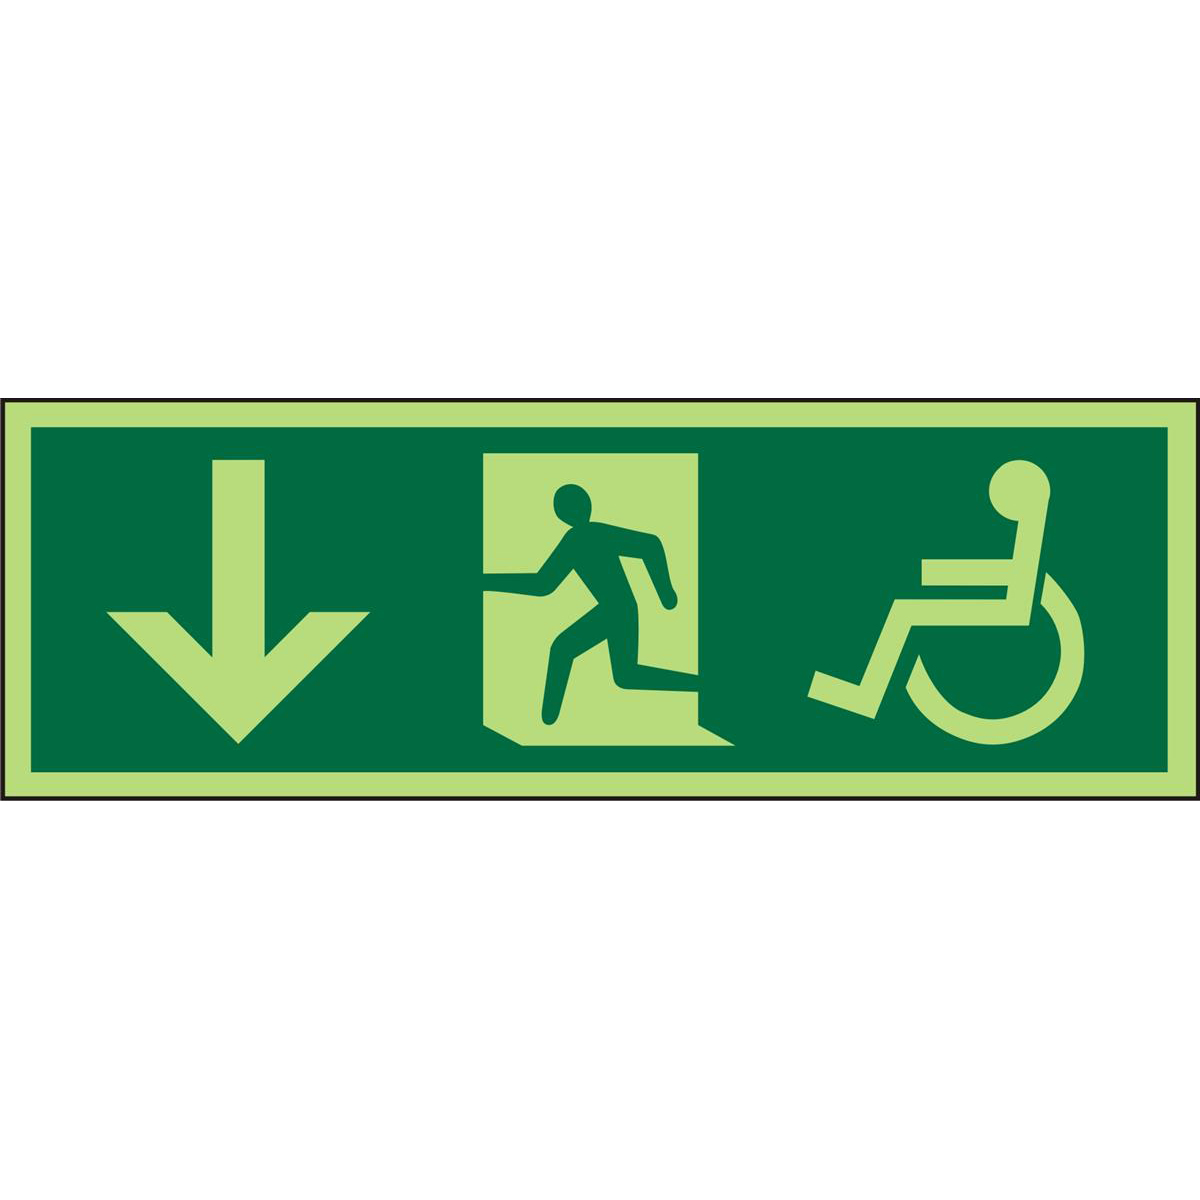 Photol Exit Sign 2mm Wheelchair Picto/Man run right Arrow down Ref PDSP095450x150 *Up to 10Day Leadtime*